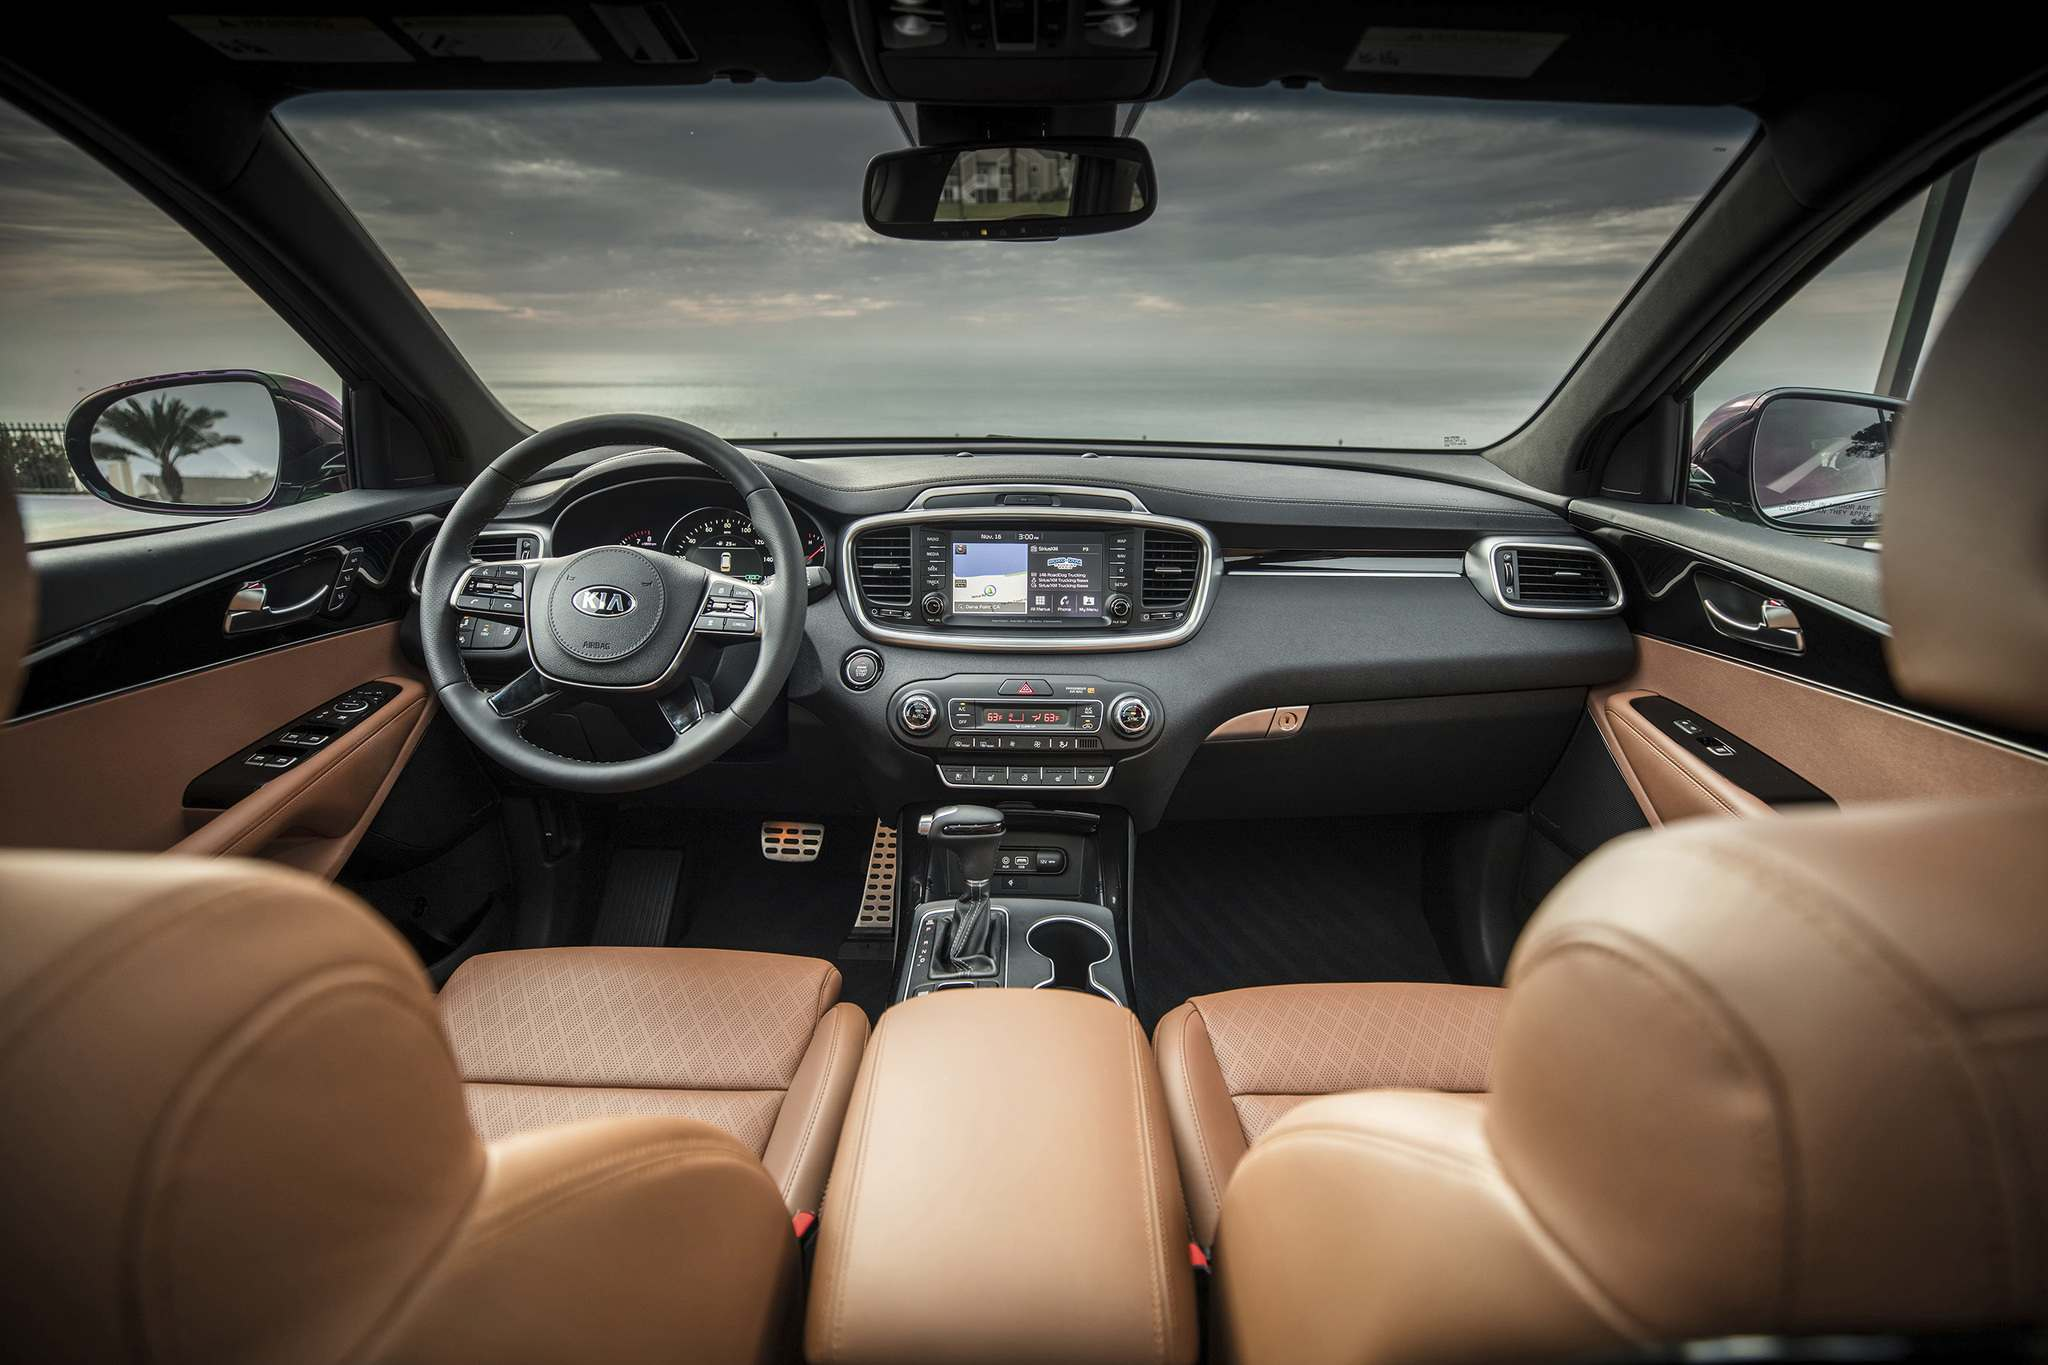 KiaThe comfortable Kia SUV features a heated leather steering wheel and heated front- and middle-row seats on the SX and higher trims.